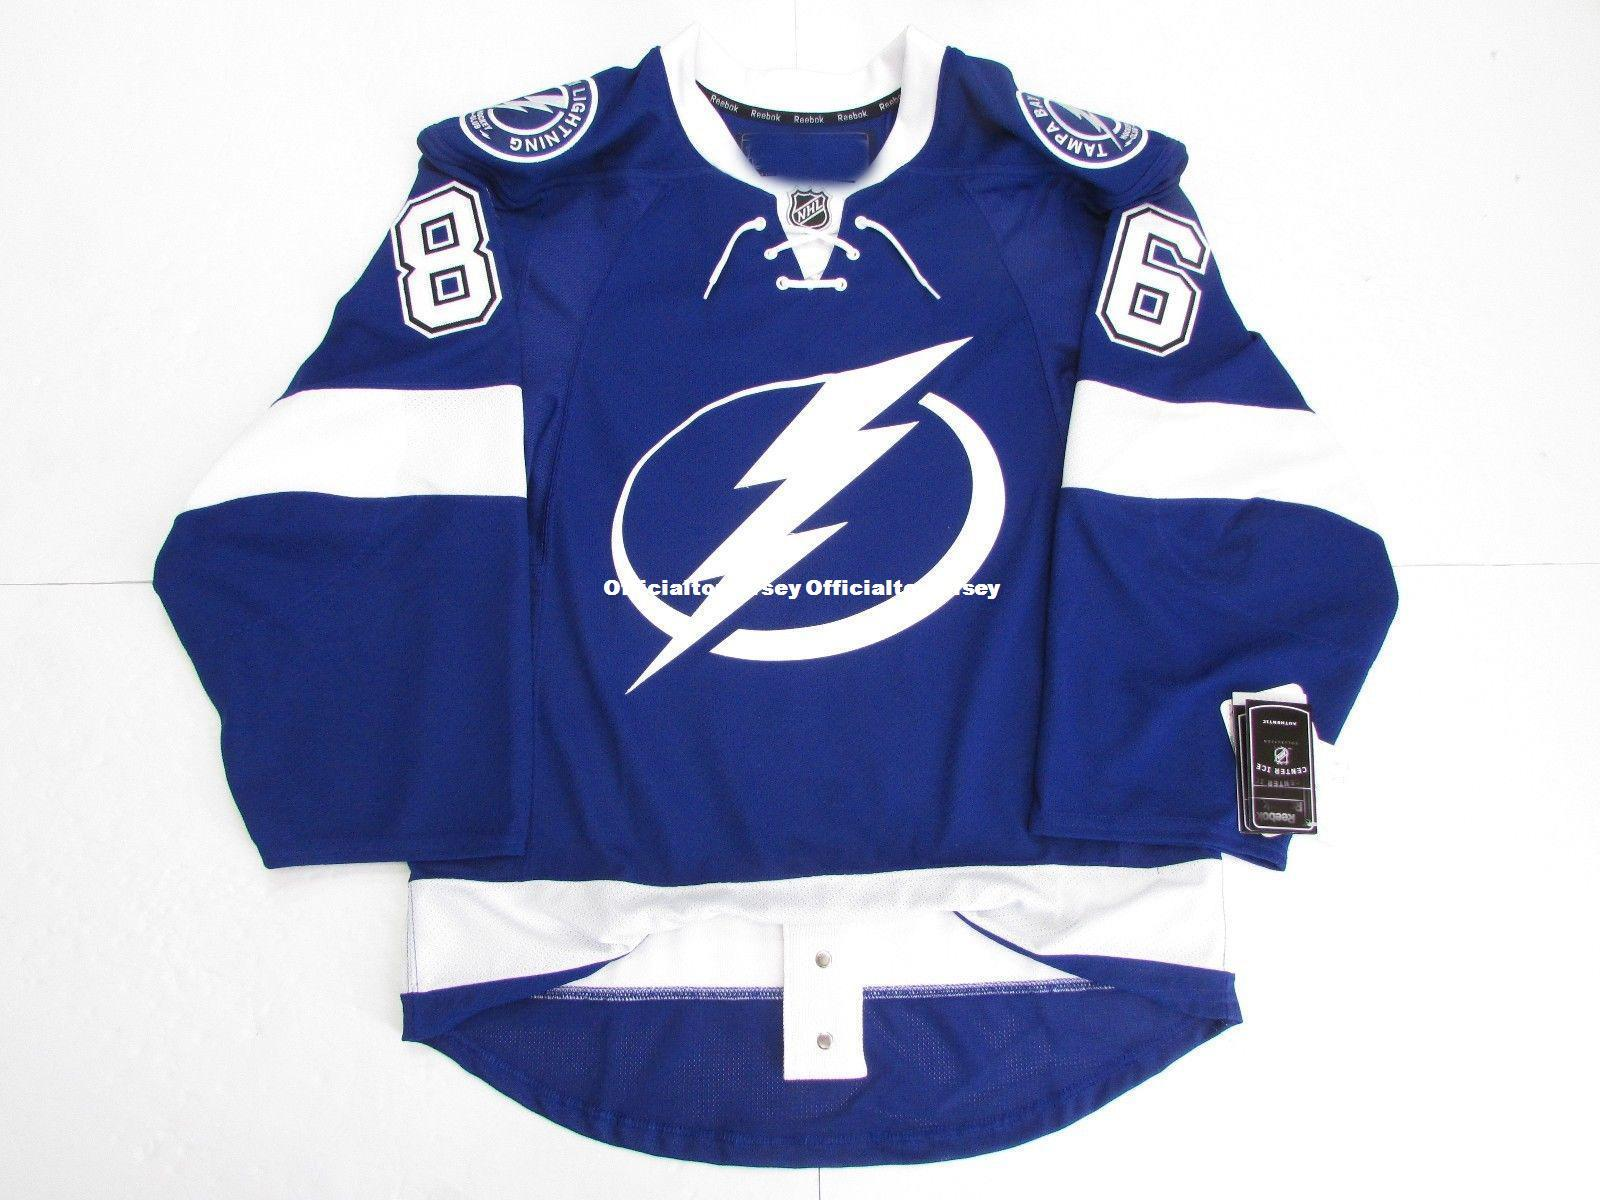 reputable site ec154 4ed83 Cheap custom NIKITA KUCHEROV TAMPA BAY LIGHTNING HOME EDGE 2.0 7287 JERSEY  stitch add any number any name Mens Hockey Jersey GOALIE CUT 5XL